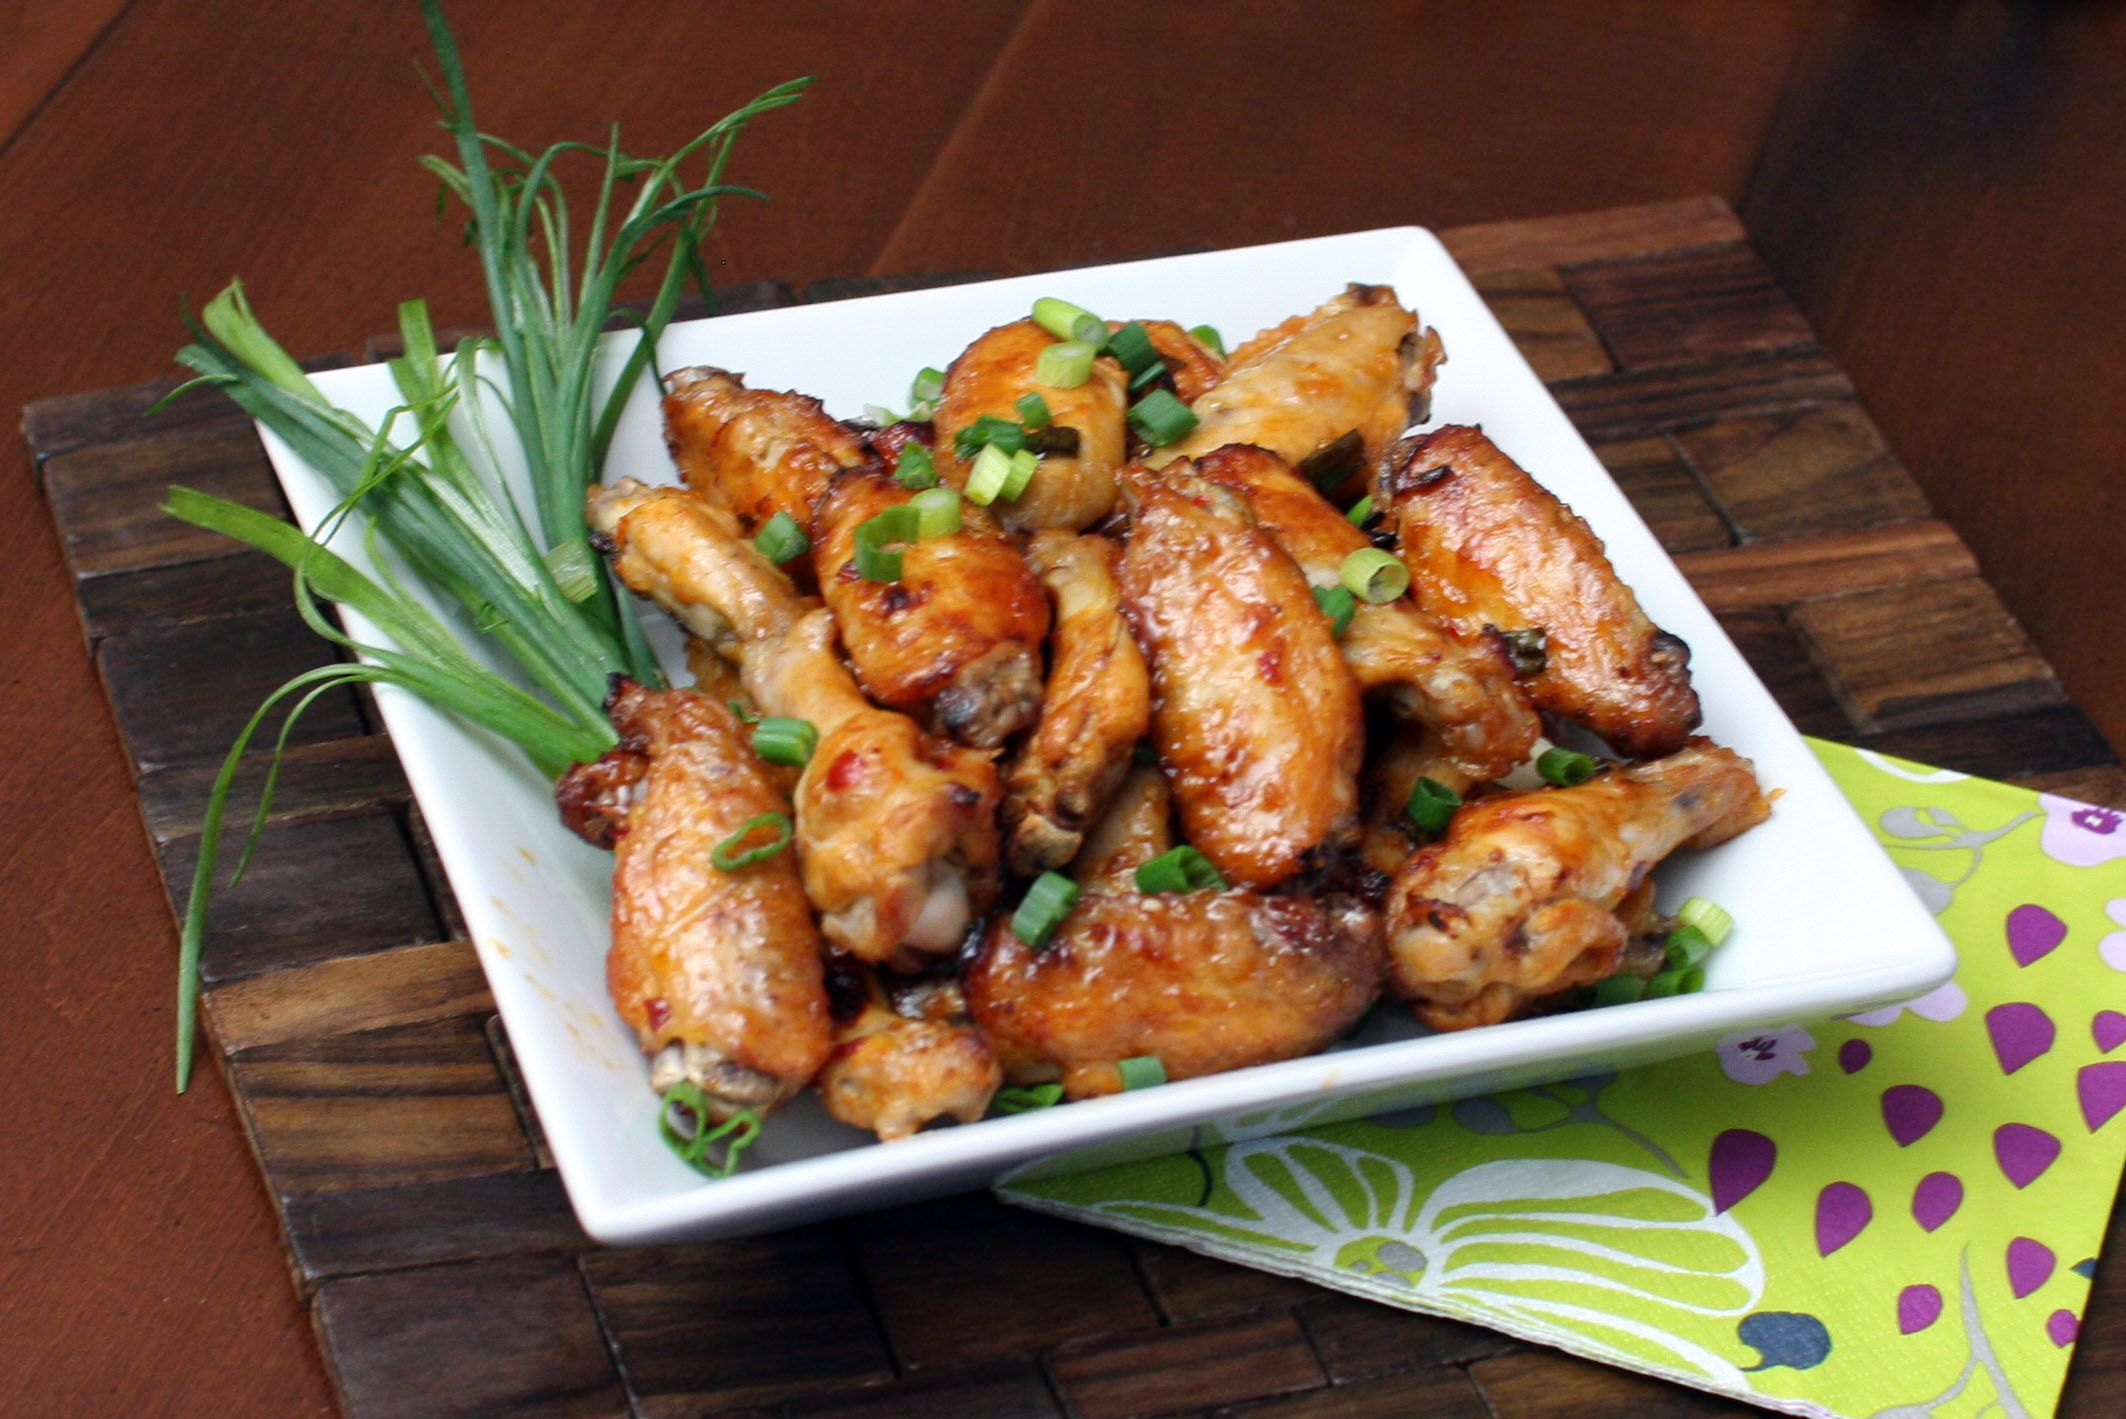 Spicy Cajun Style Chicken Wings